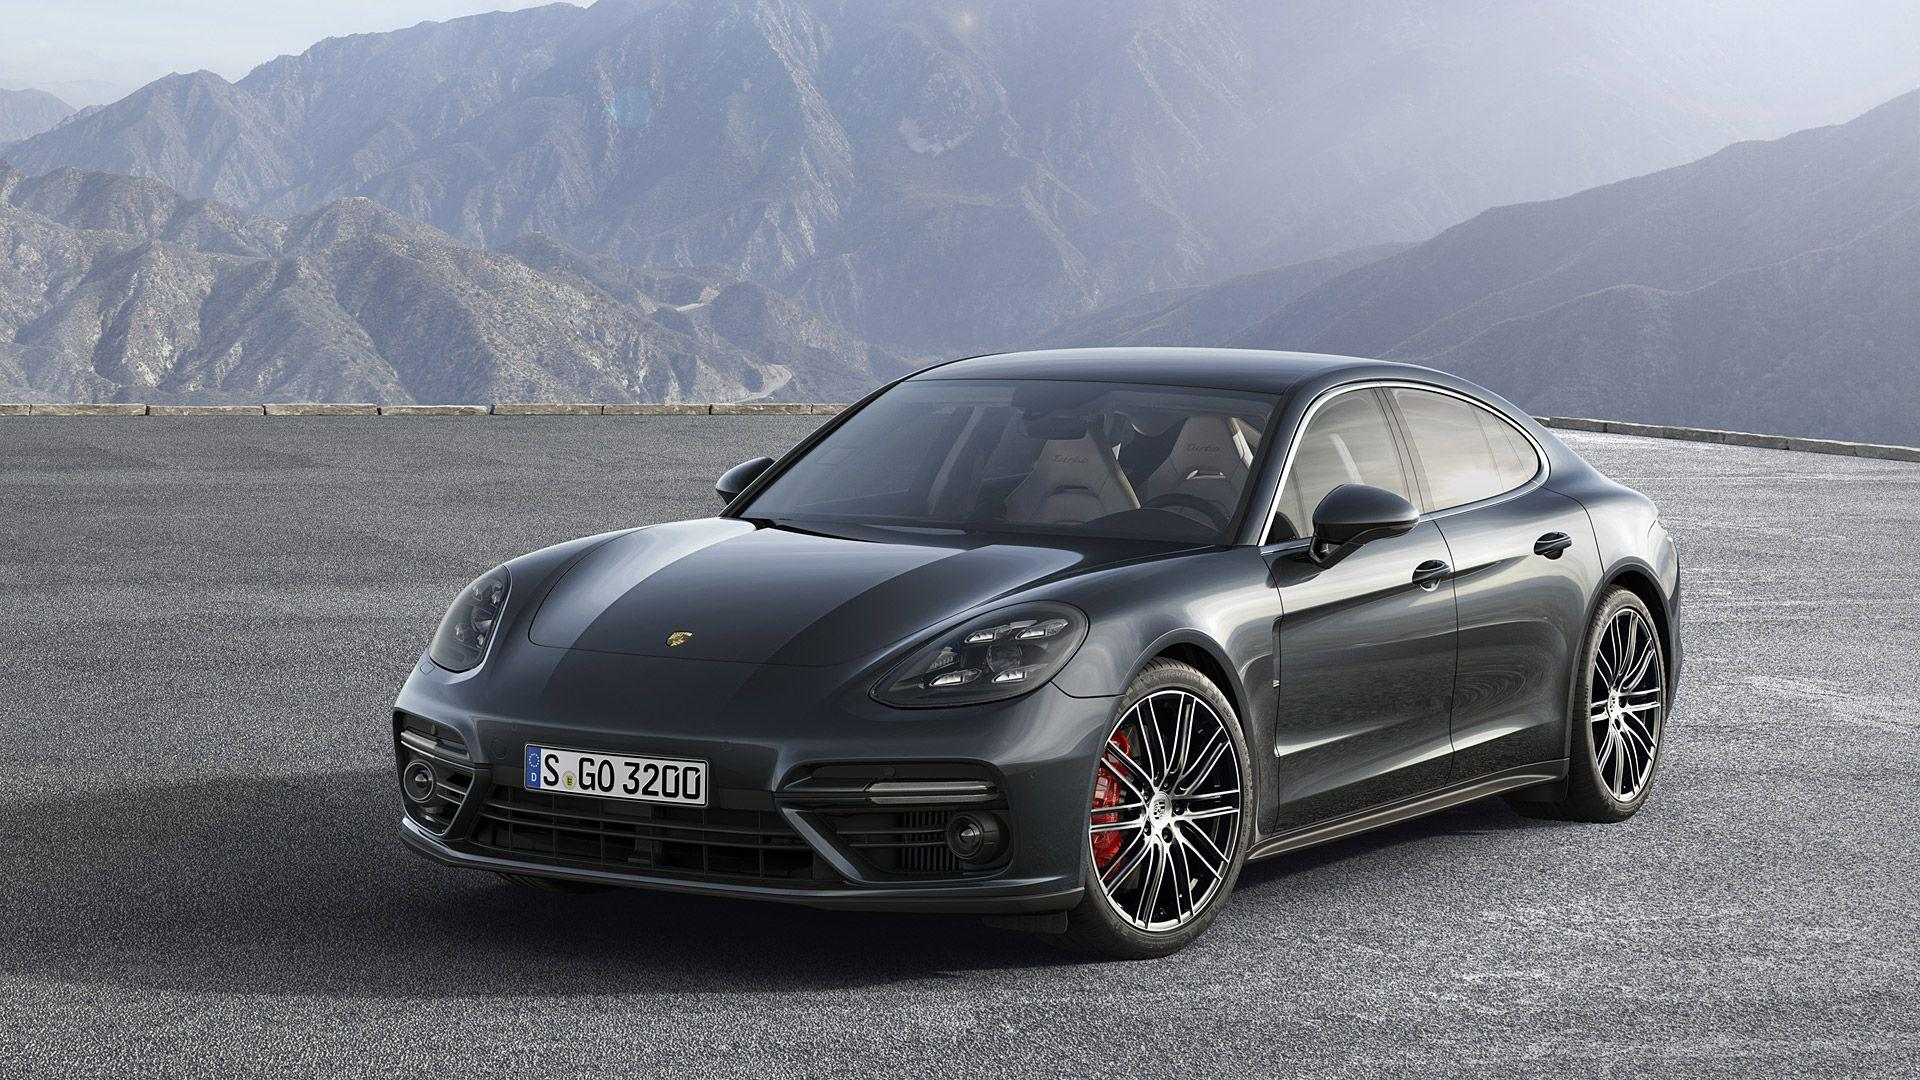 2017 Porsche Panamera Turbo Wallpapers & HD Images - WSupercars